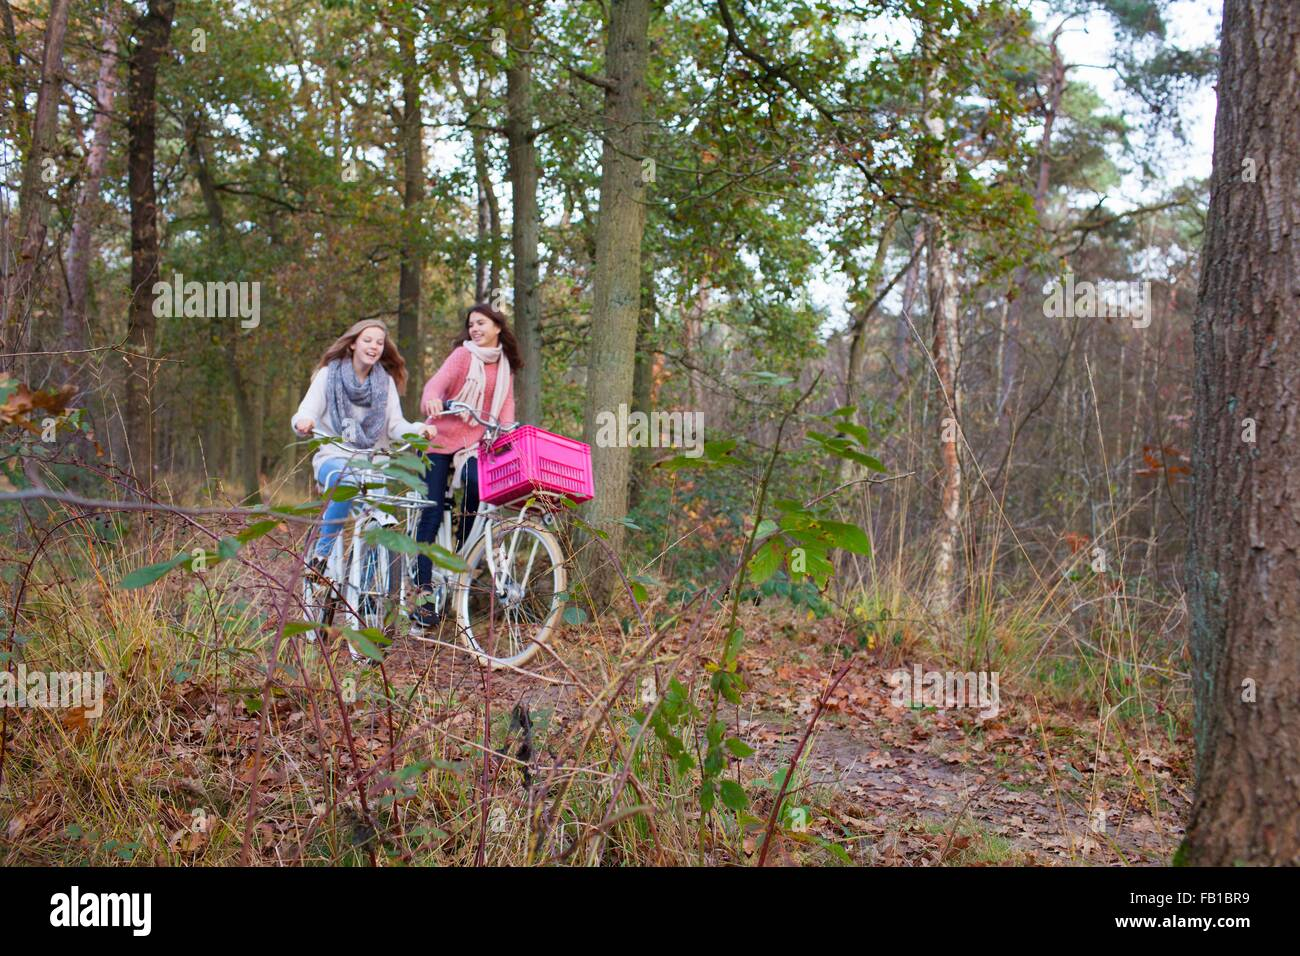 Teenage girls in forest cycling on bicycles with pink crate attached Stock Photo